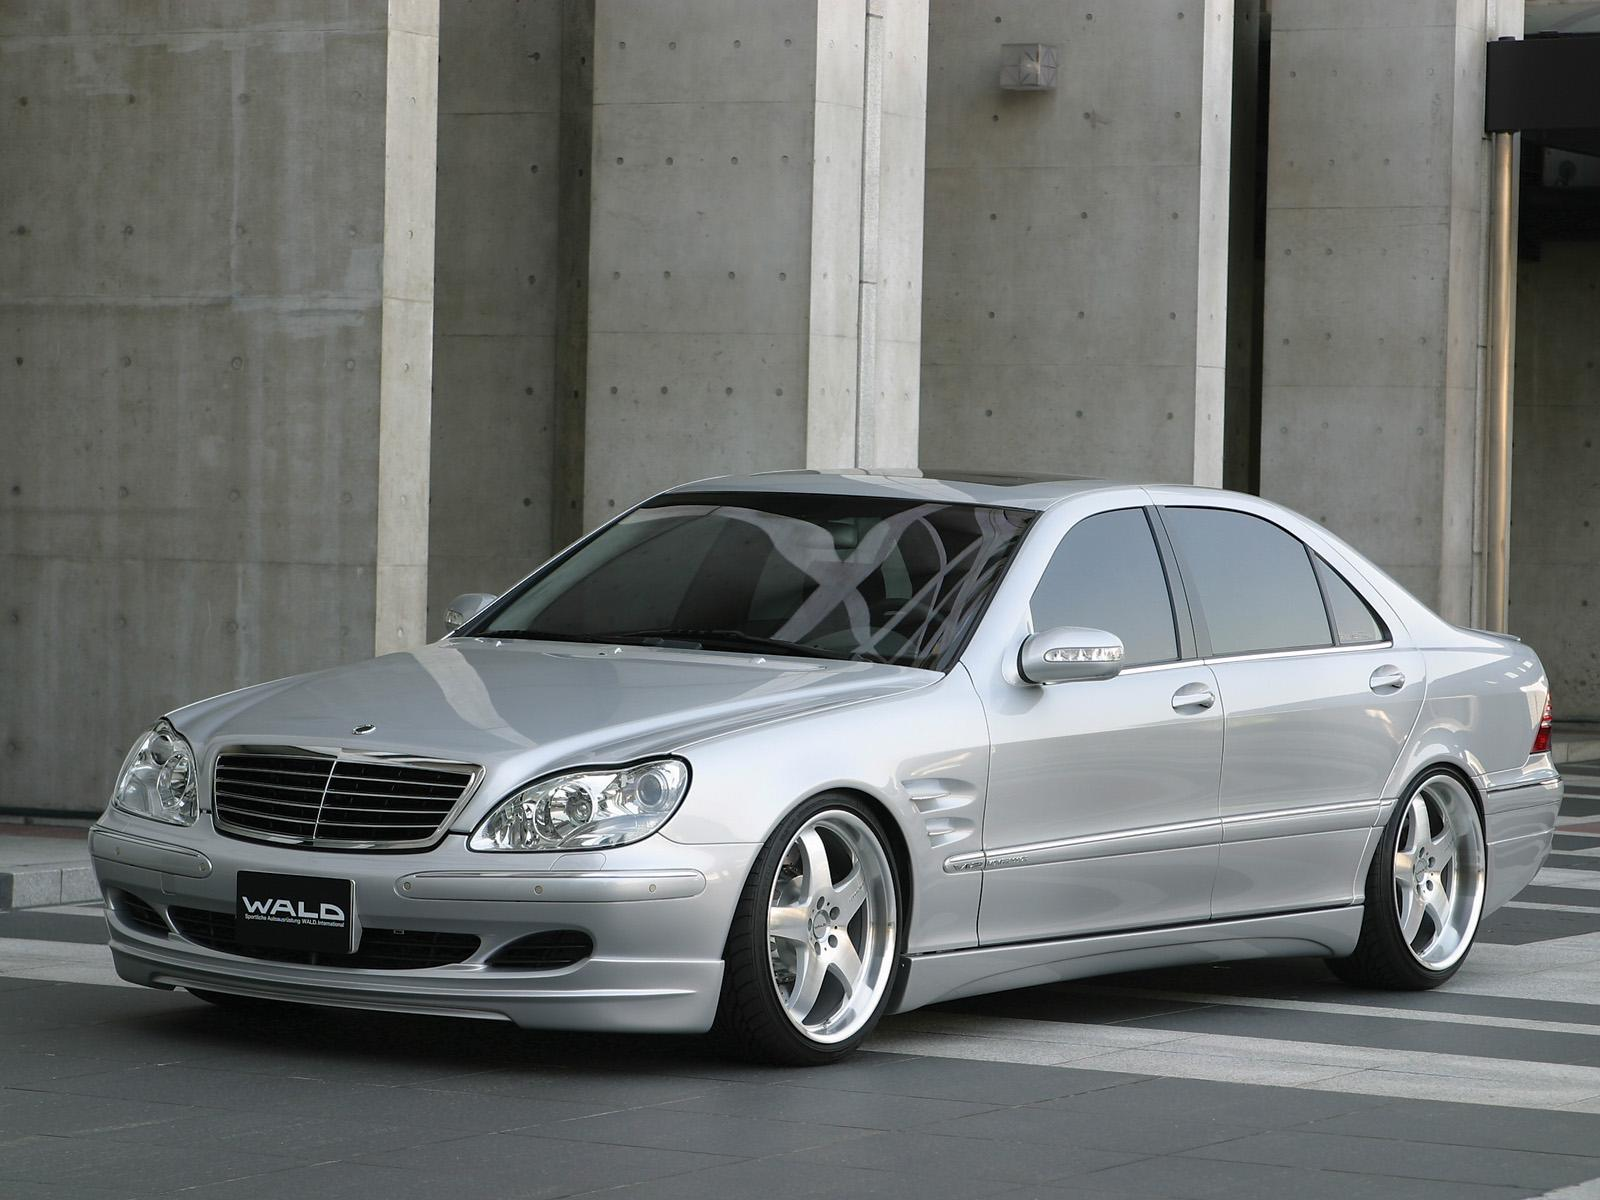 Wald Bercedes Benz S600 Photos Photogallery With 6 Pics